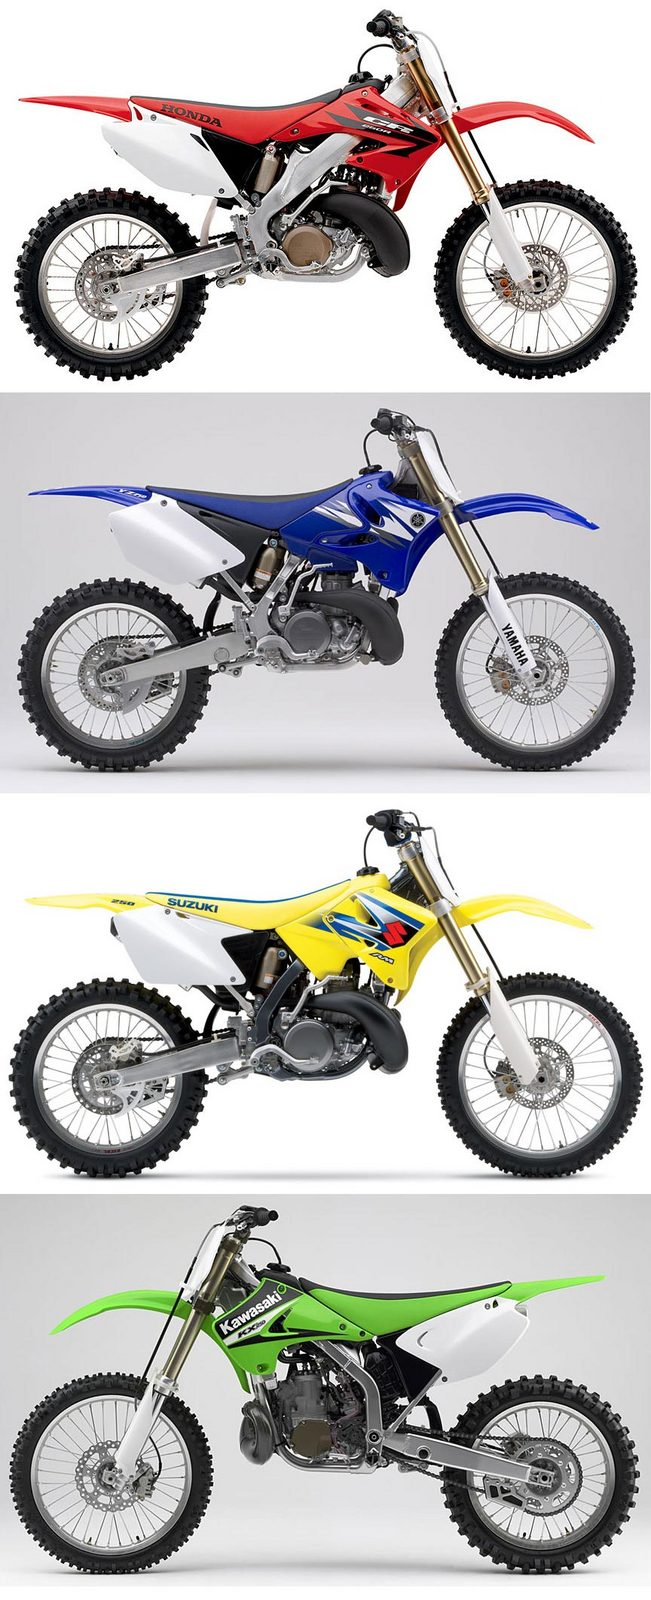 Which Japanese 250cc 2-stroke dirtbike do like best? | South Bay Riders